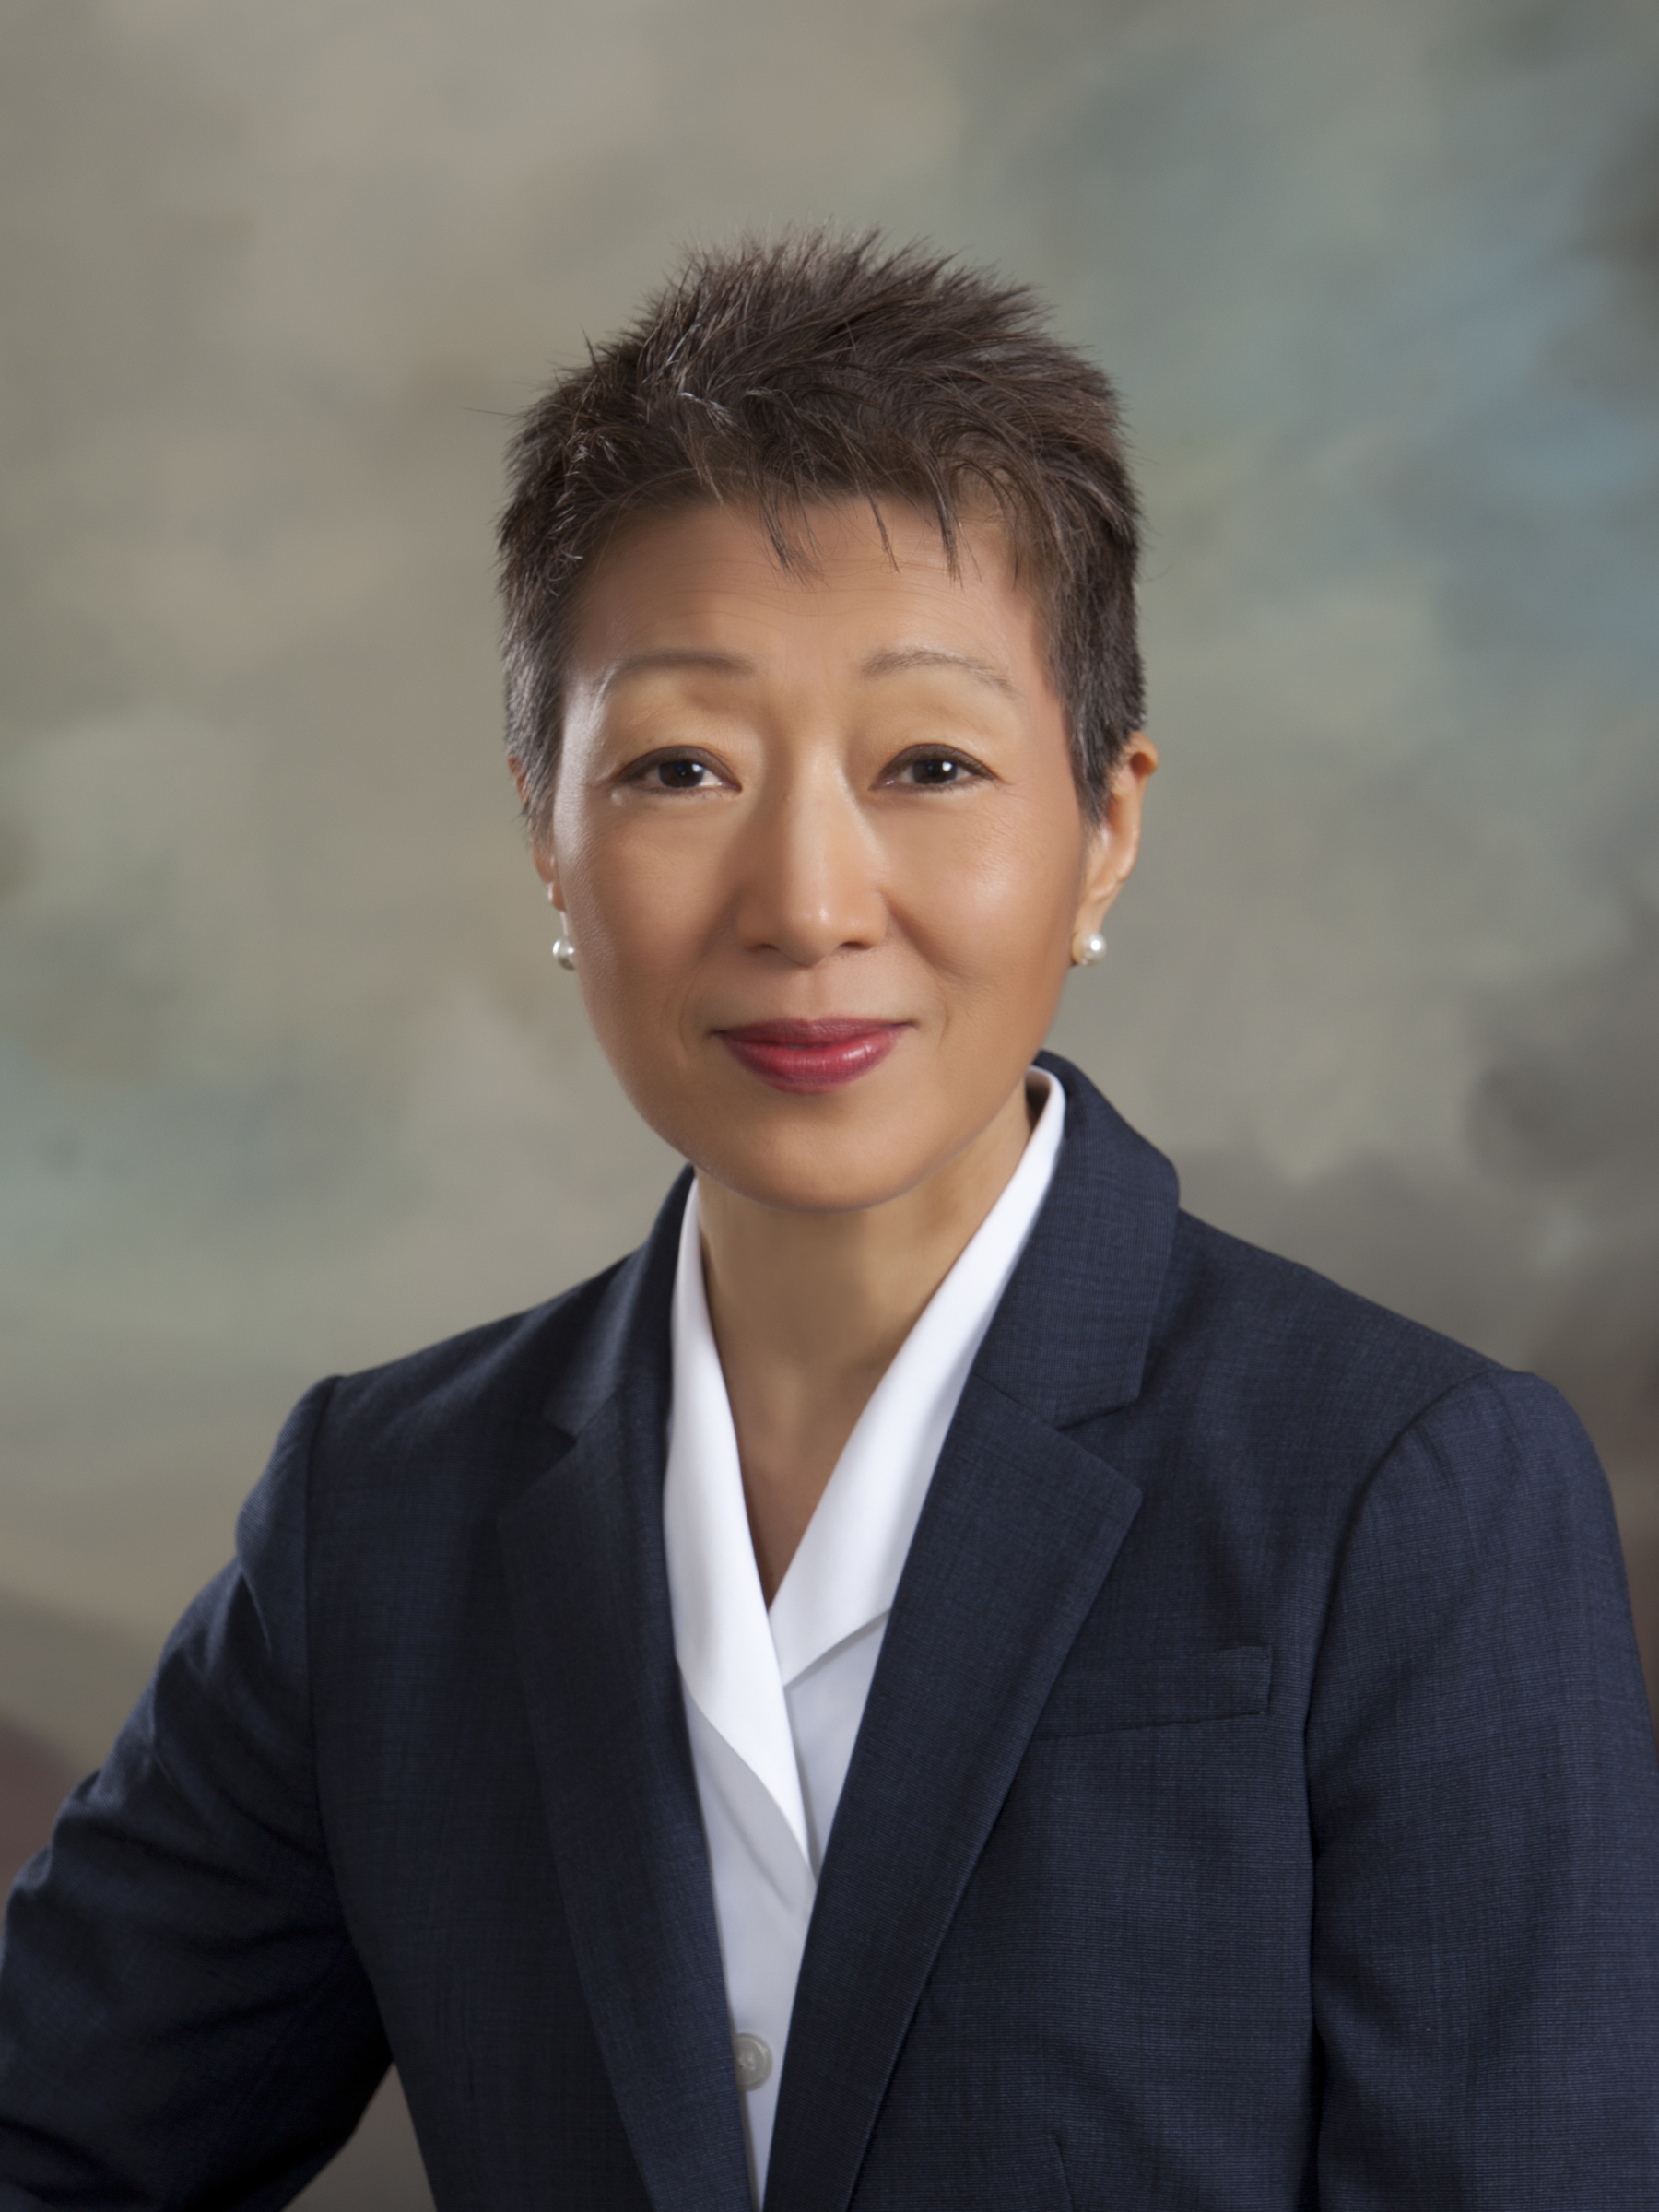 Jane Chu, chairman of the National Endowment for the Arts